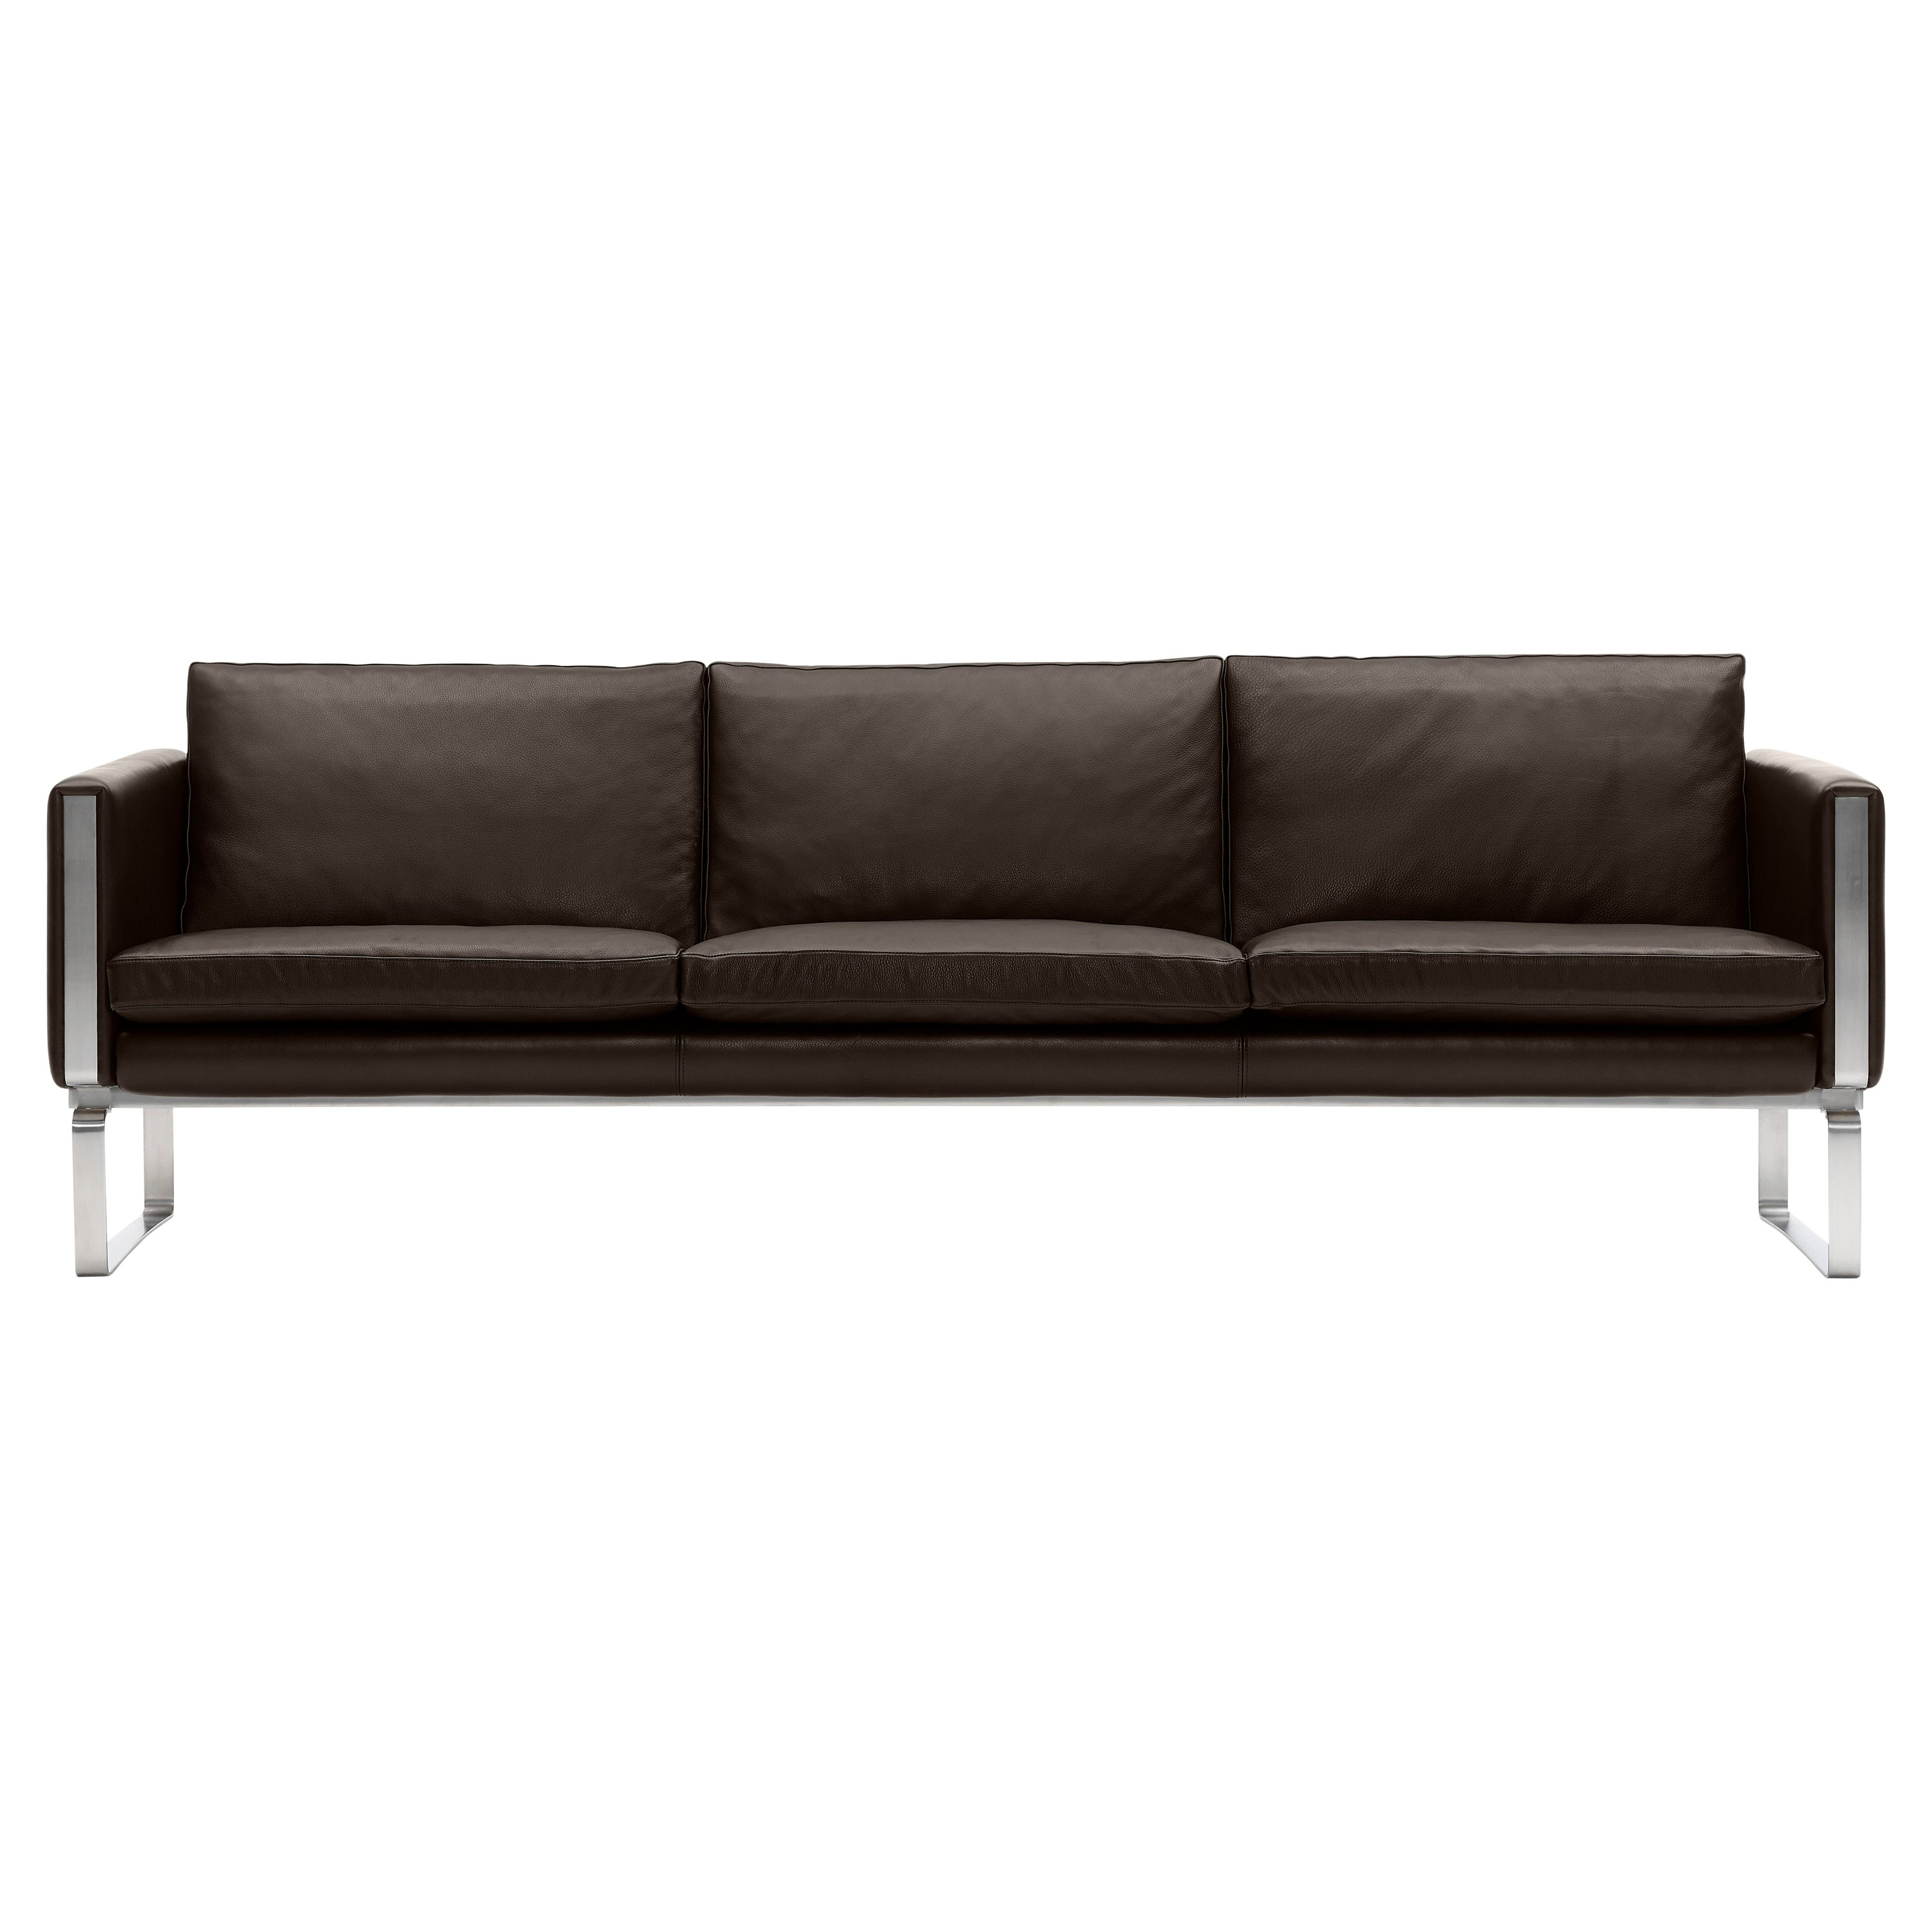 CH104 4-Seat Sofa in Stainless Steel Frame with Leather Seat by Hans J. Wegner